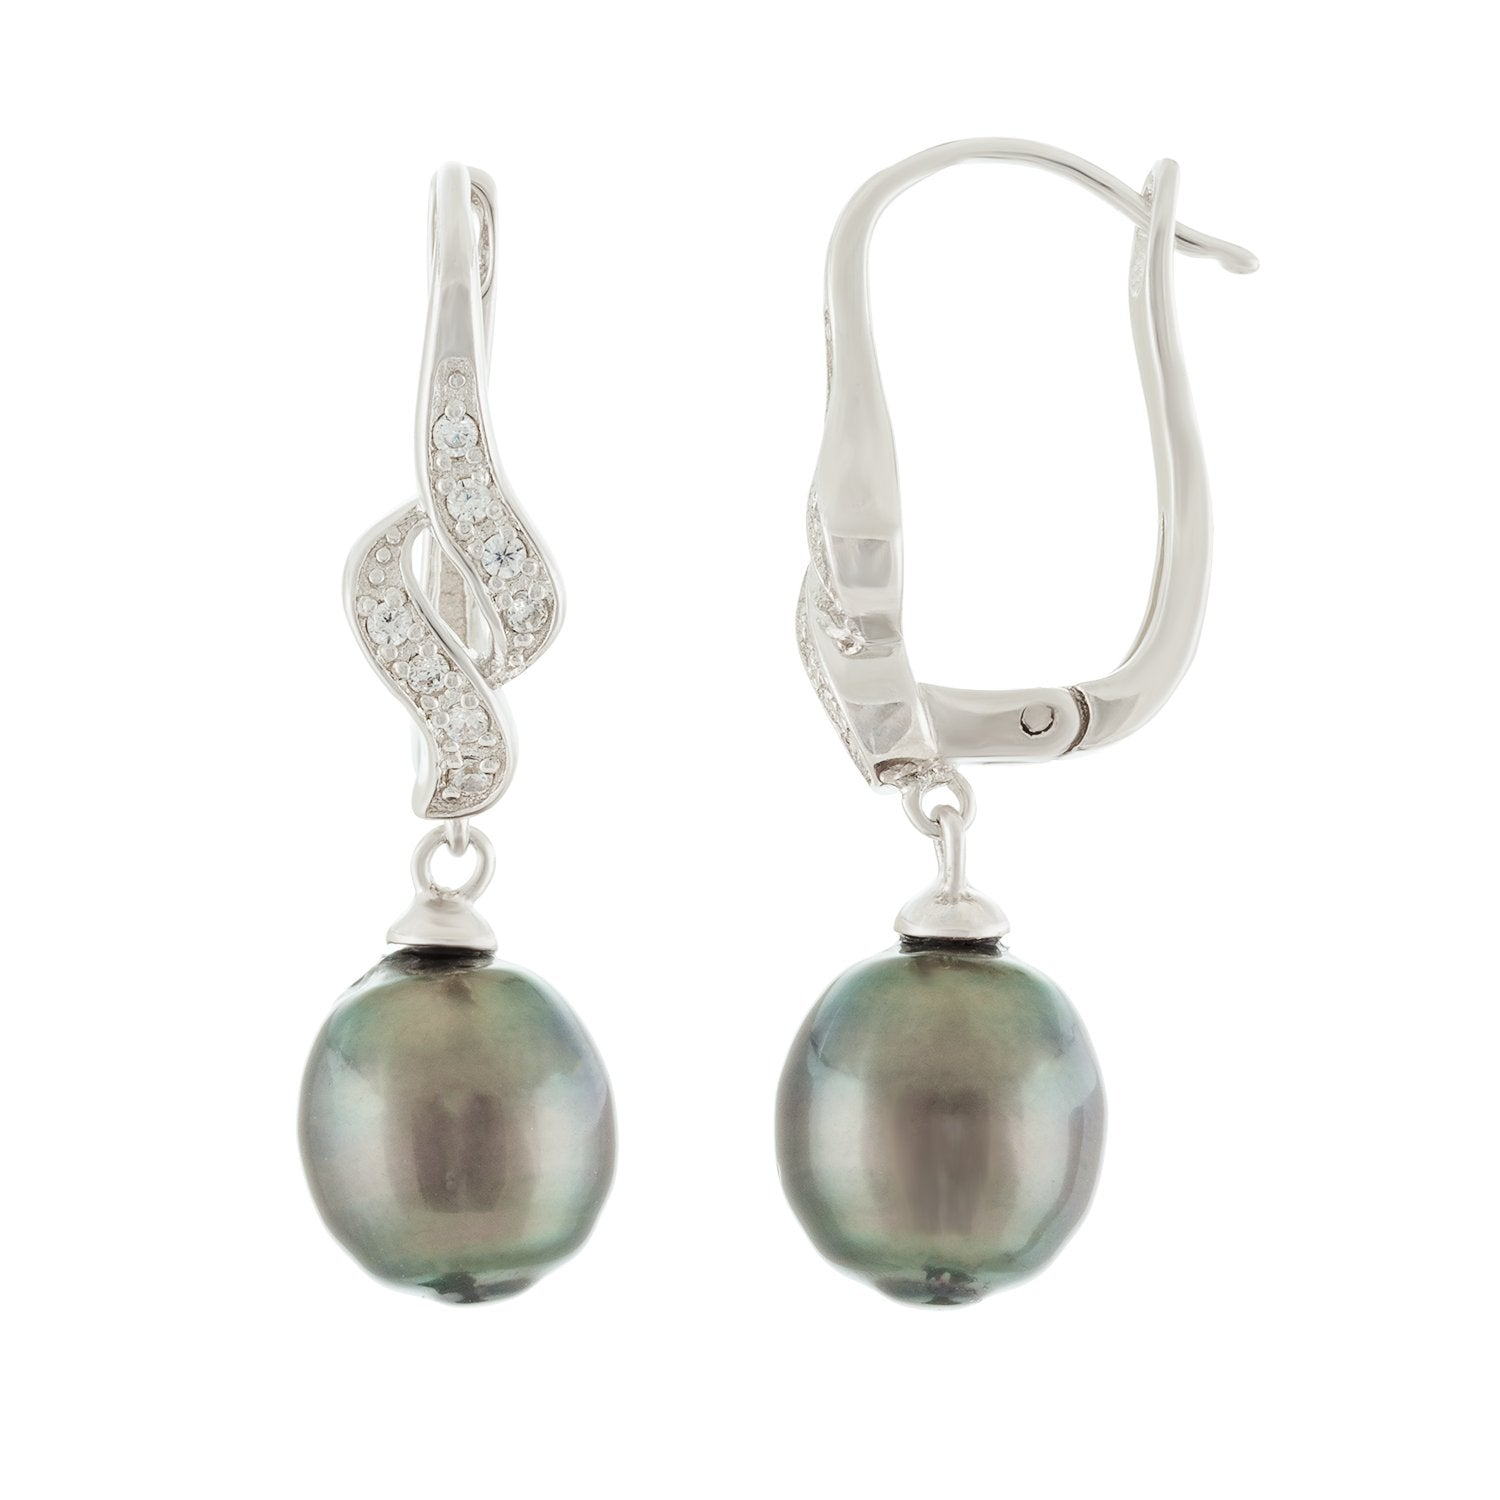 Lustruous Tahitian Pearl Leverback Earrings